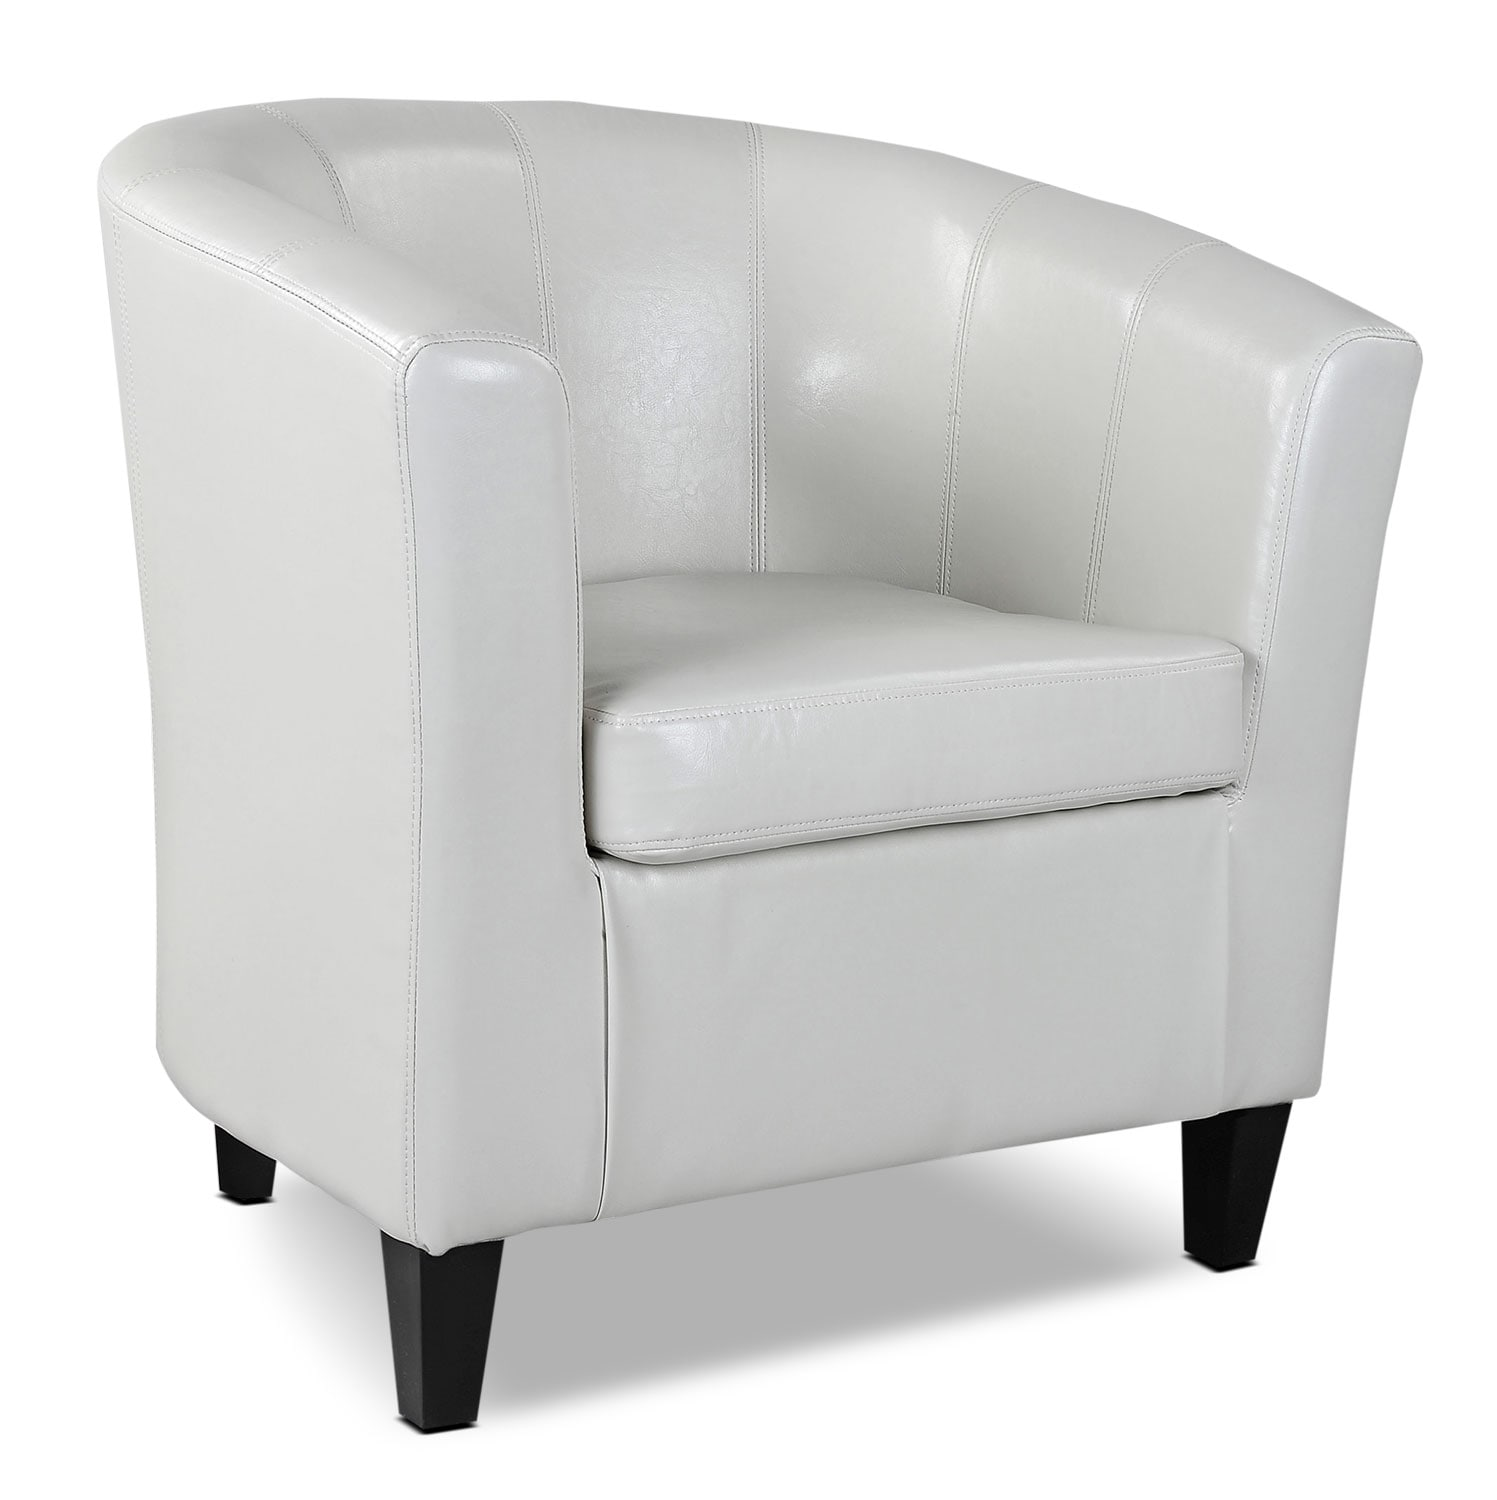 LAD Bonded Leather Accent Chair – Cream